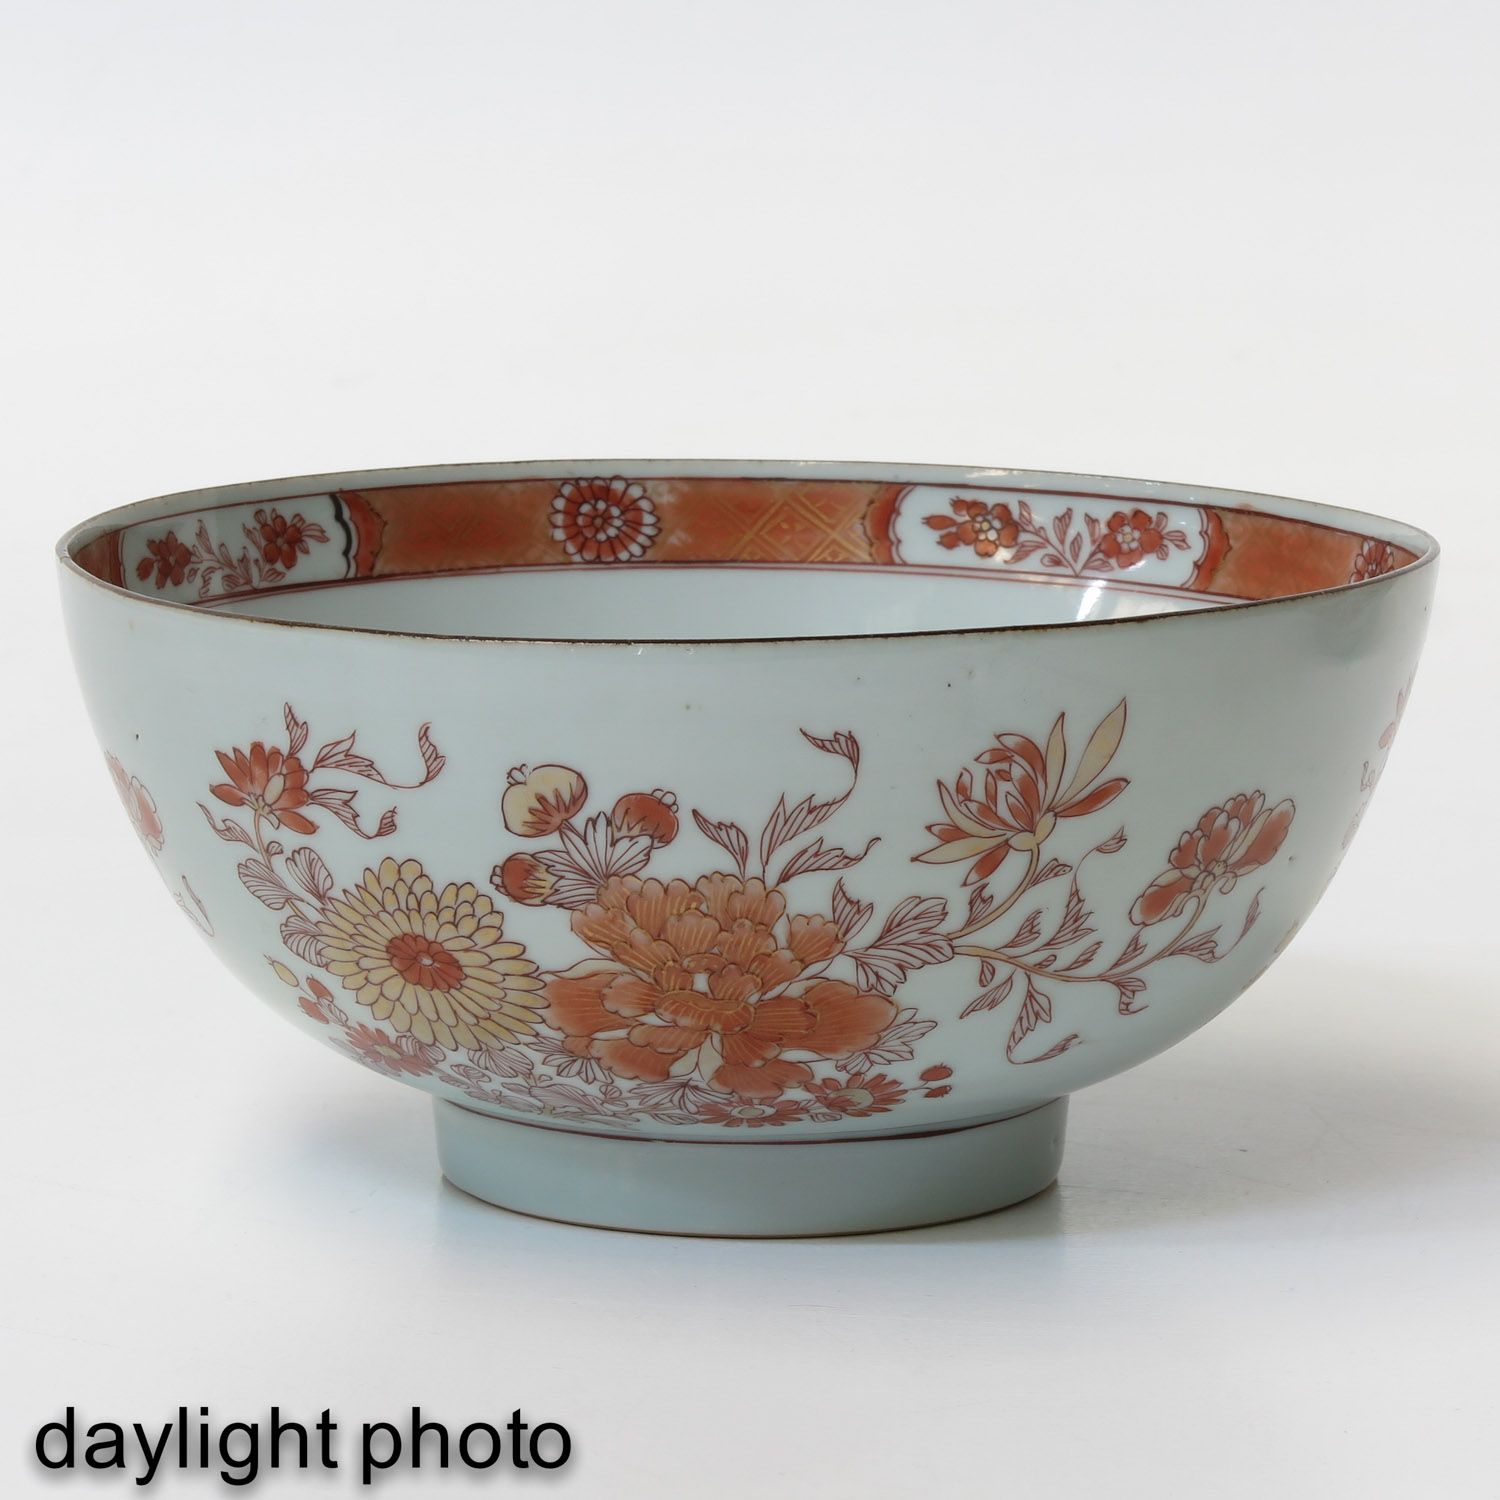 A Pair of Milk and Blood Decor Bowls - Image 7 of 9